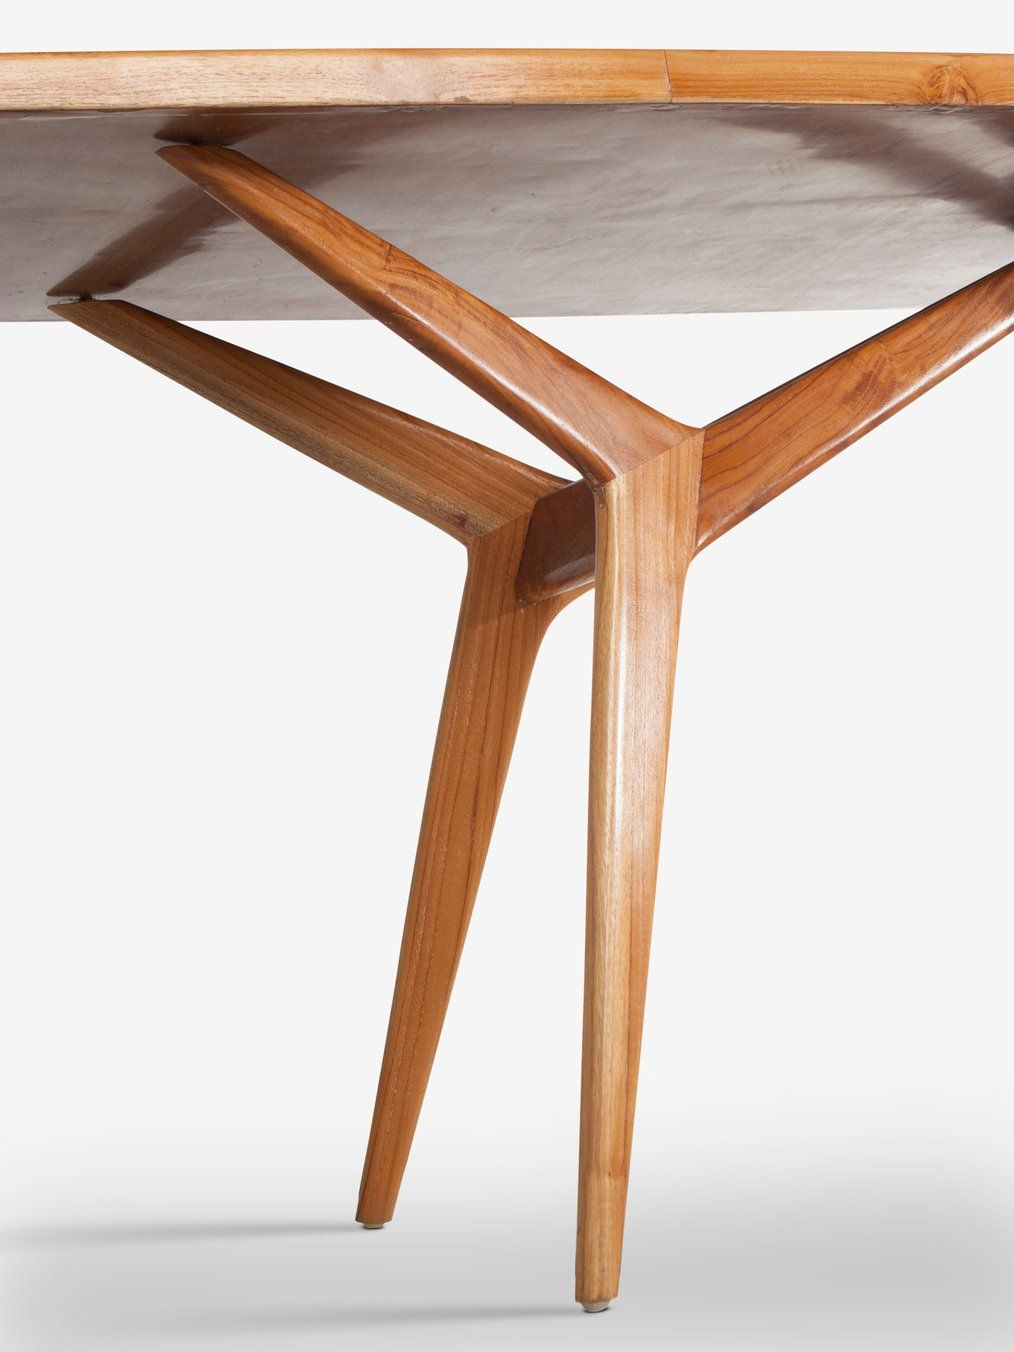 1950 S Table By Carlo Graffi Mid Century Table Legs Table Contemporary Modern Furniture Mid century coffee table legs